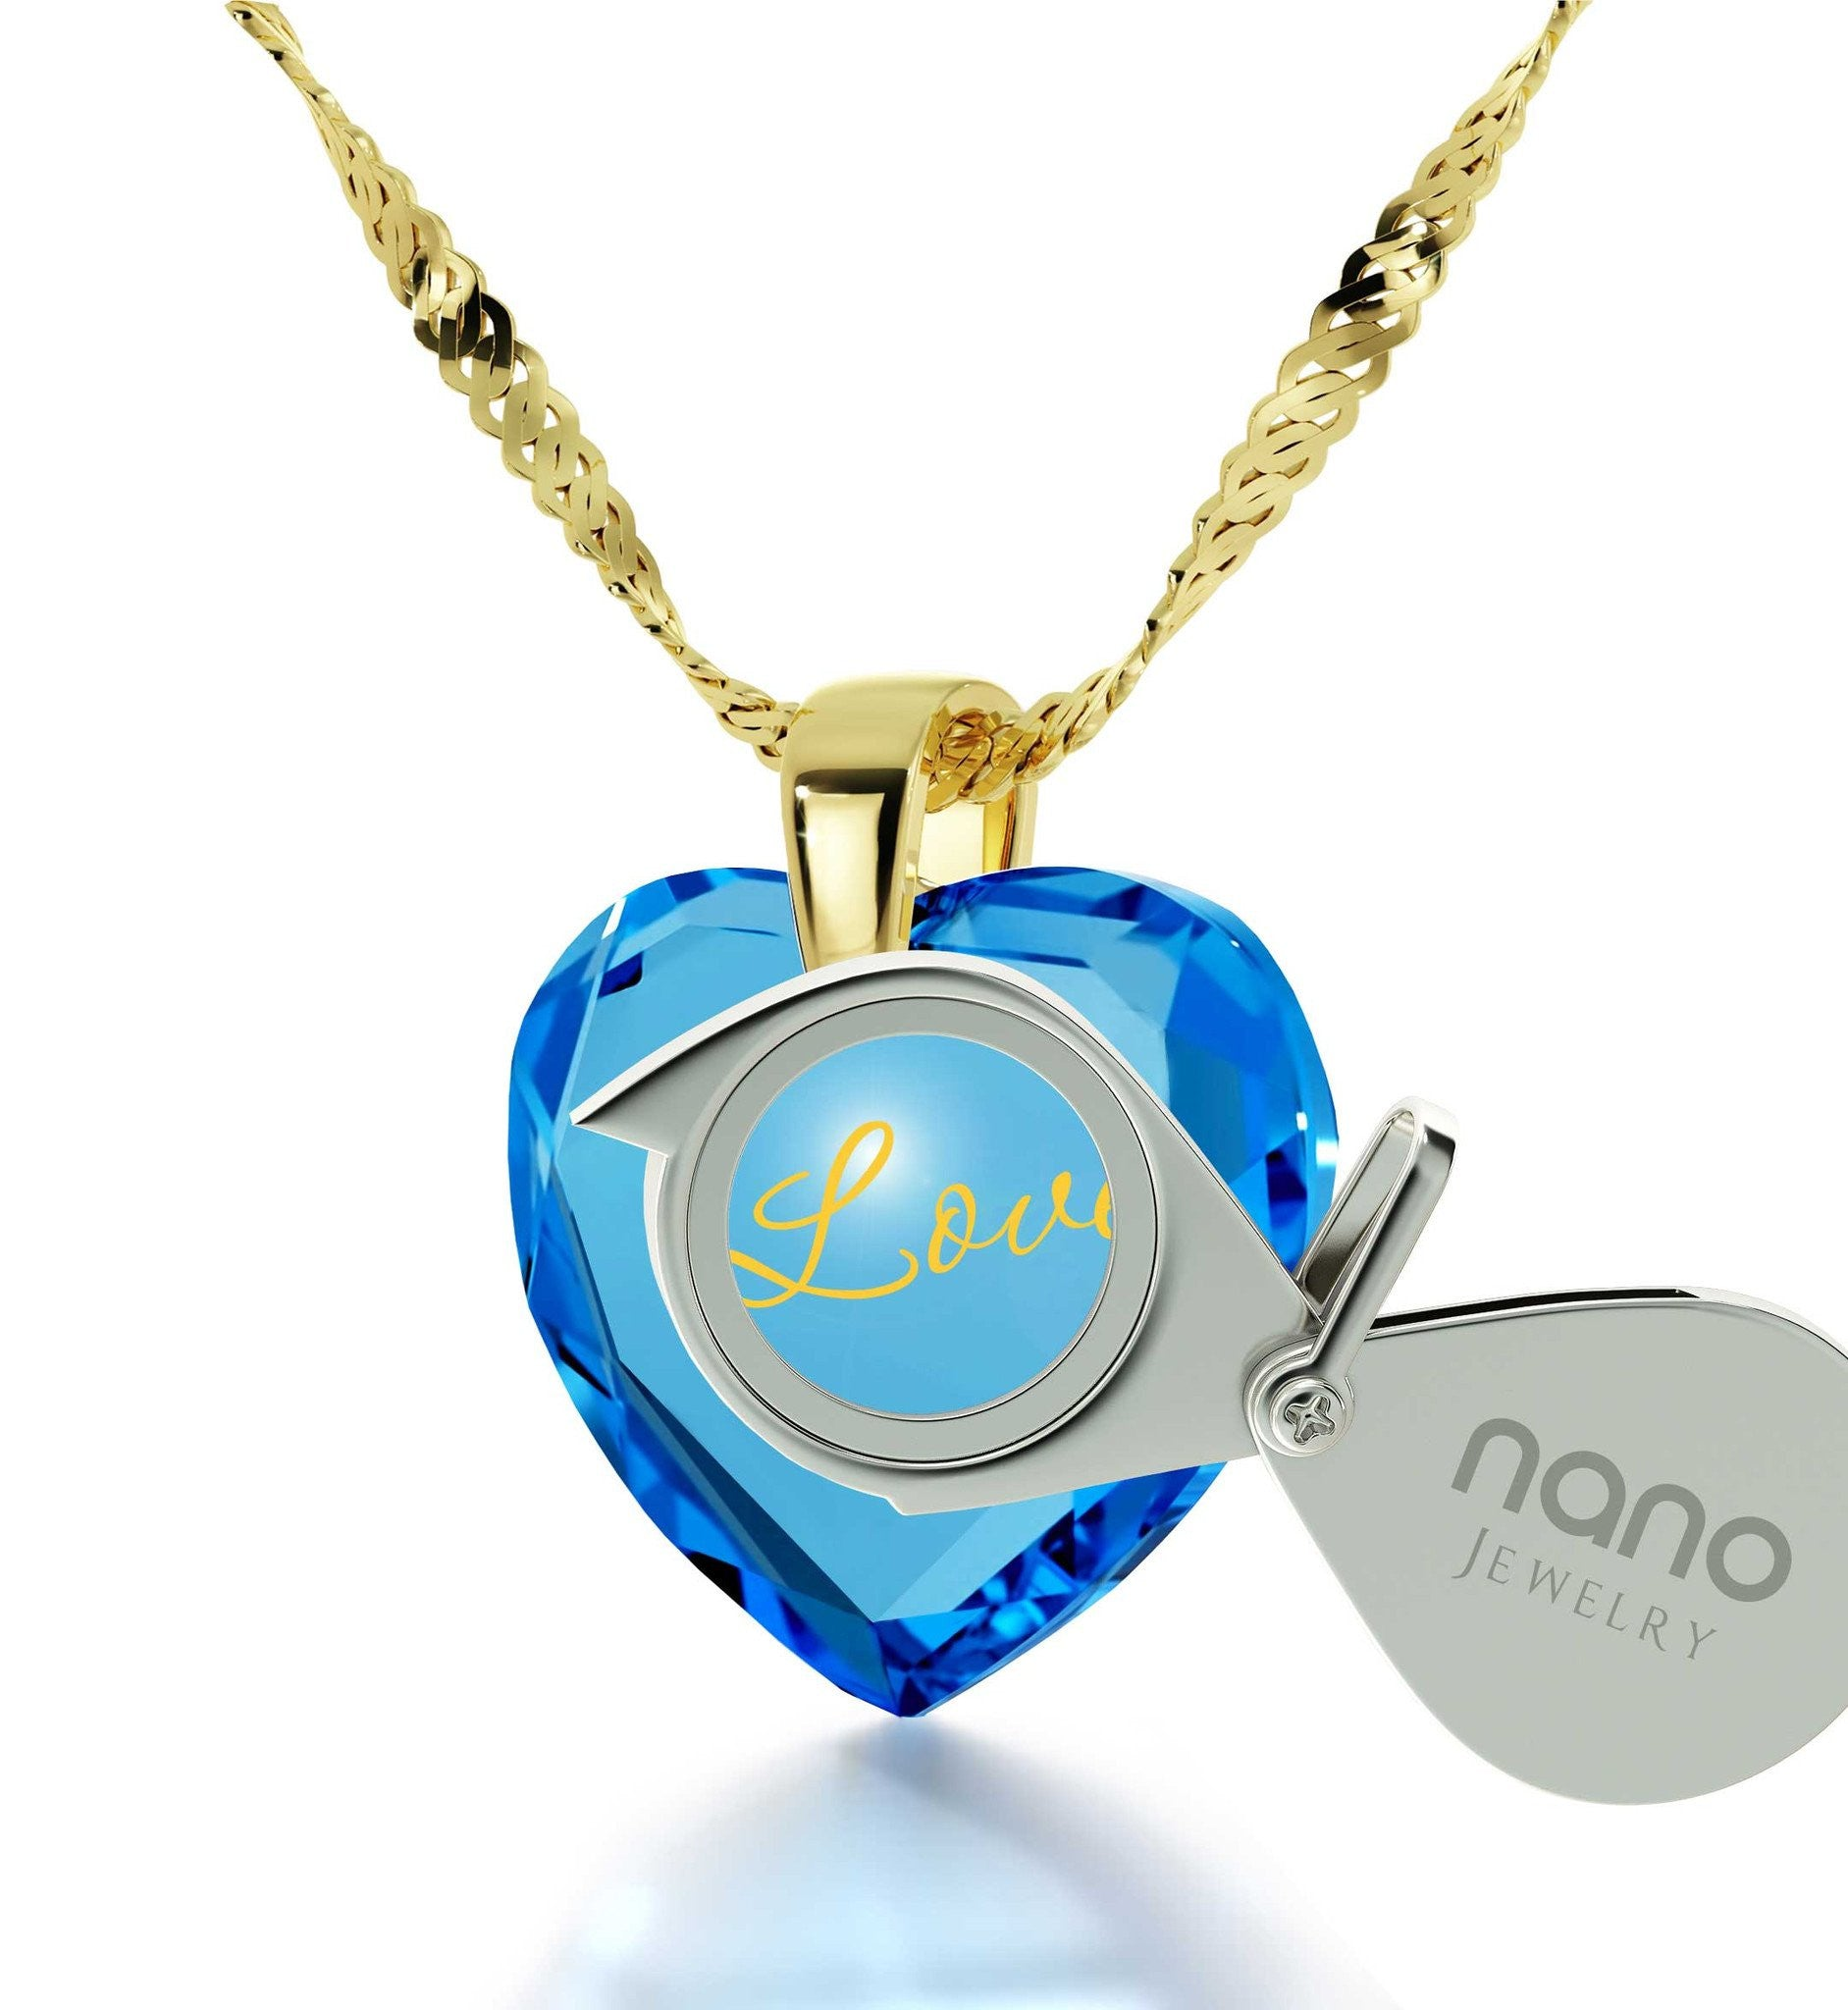 Women's Gifts for Christmas, I Love You Blue Stone Jewelry, Birthday Ideas for Wife, by Nano